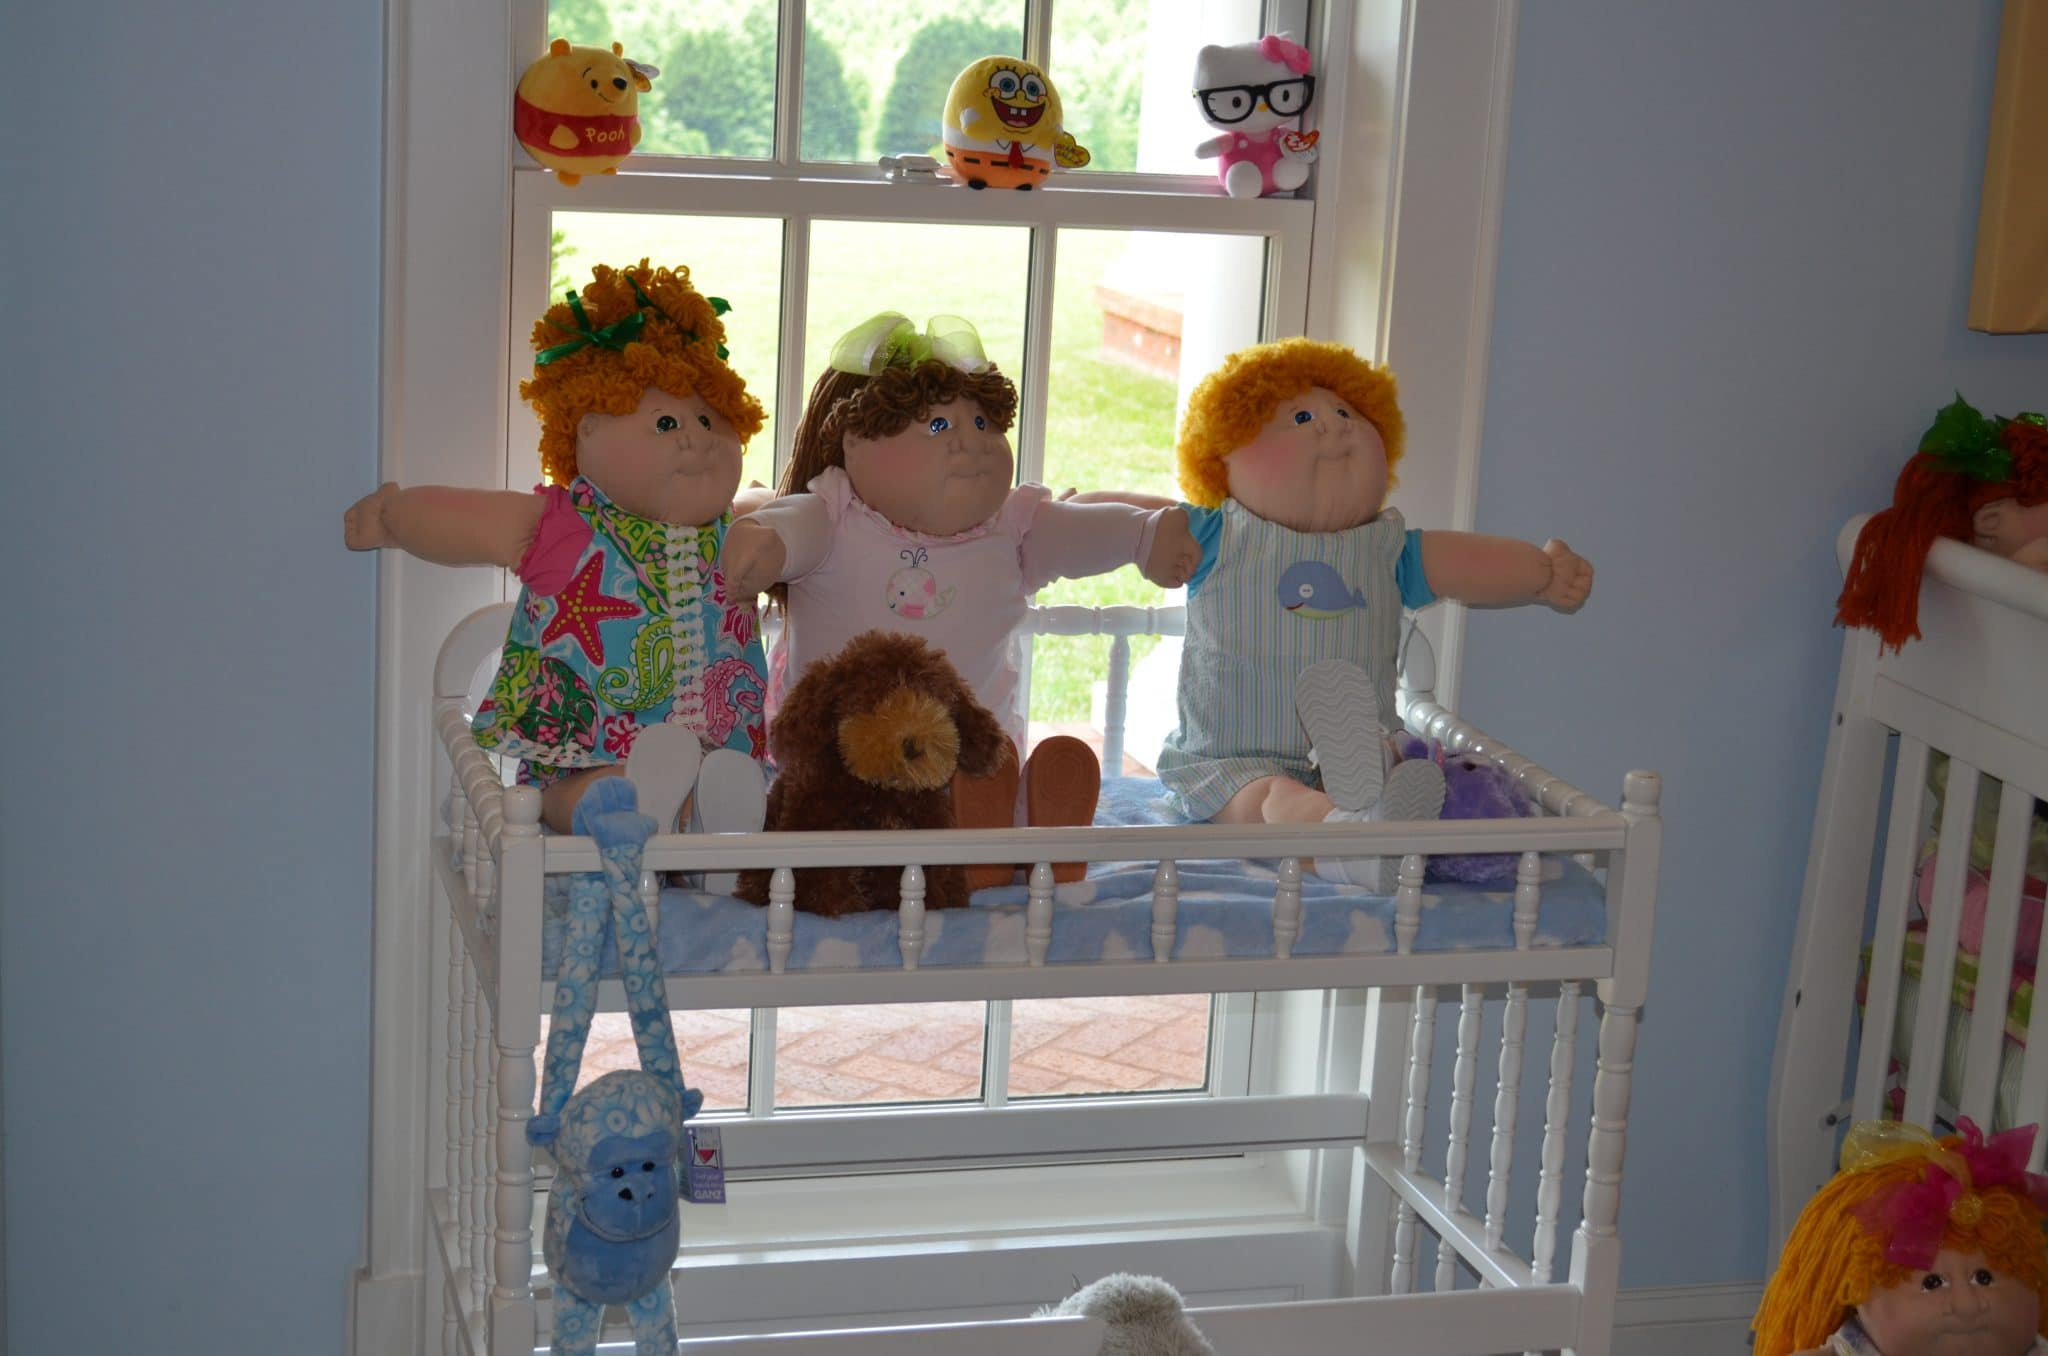 Cabbage Patch Kids Tea Party